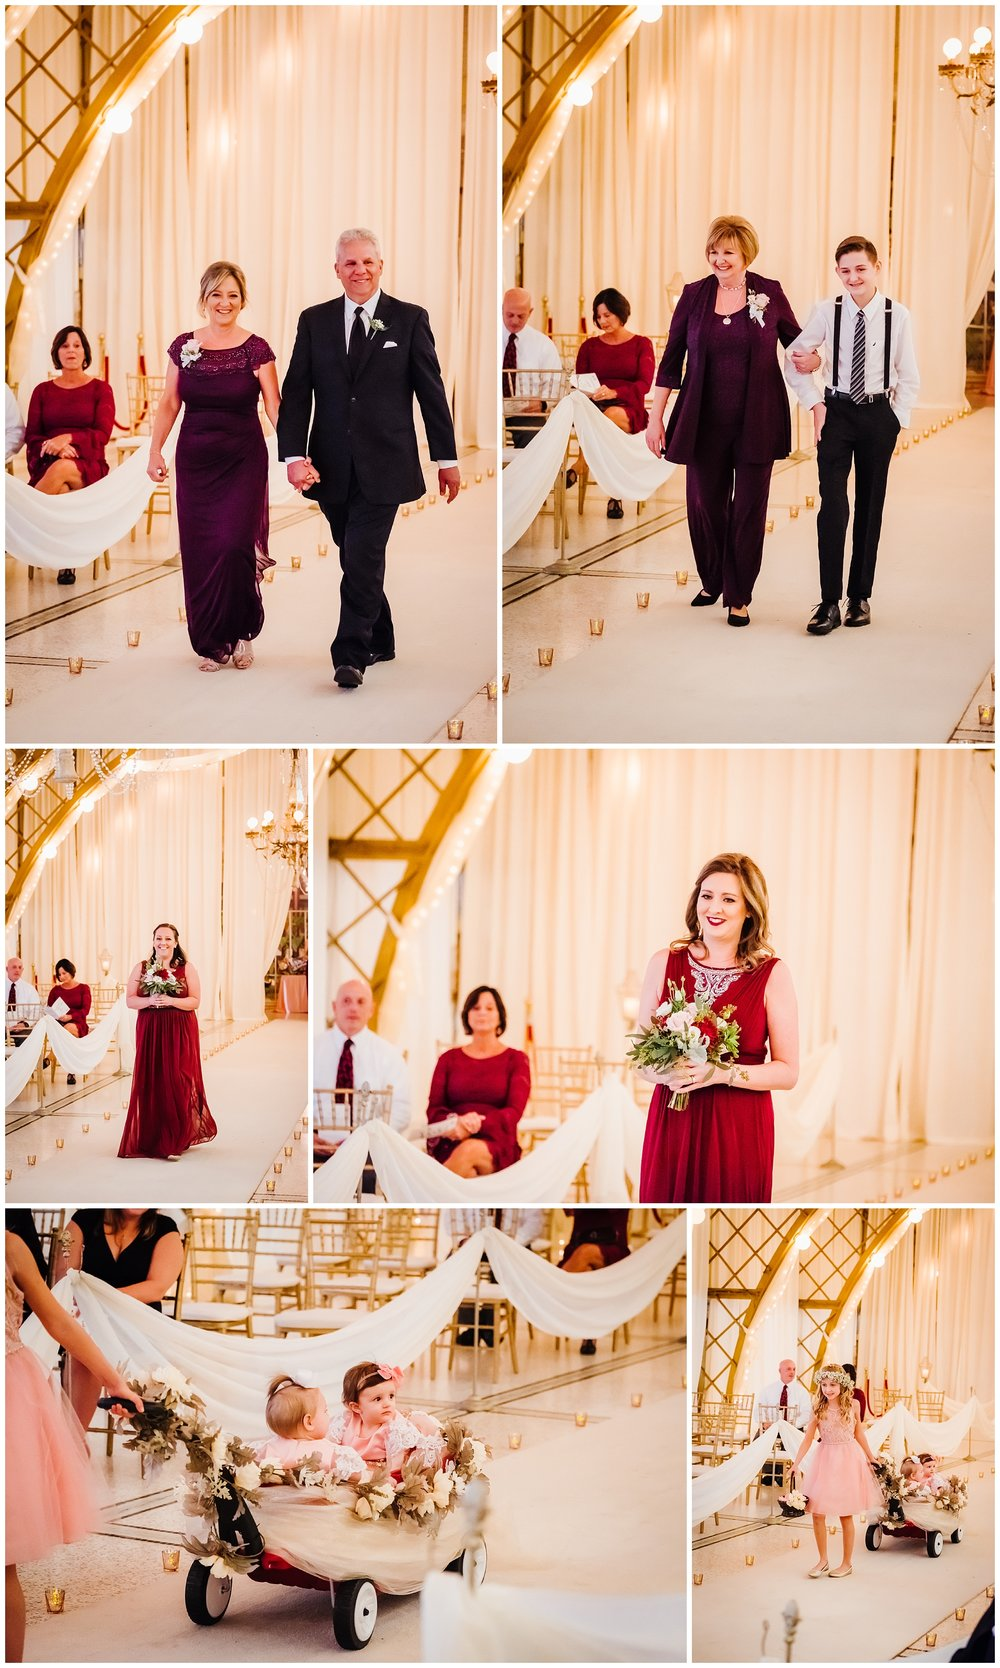 tampa-wedding-photographer-kapok-special-events-center-hayley-paige-gress-blush-gold-disney_0031.jpg